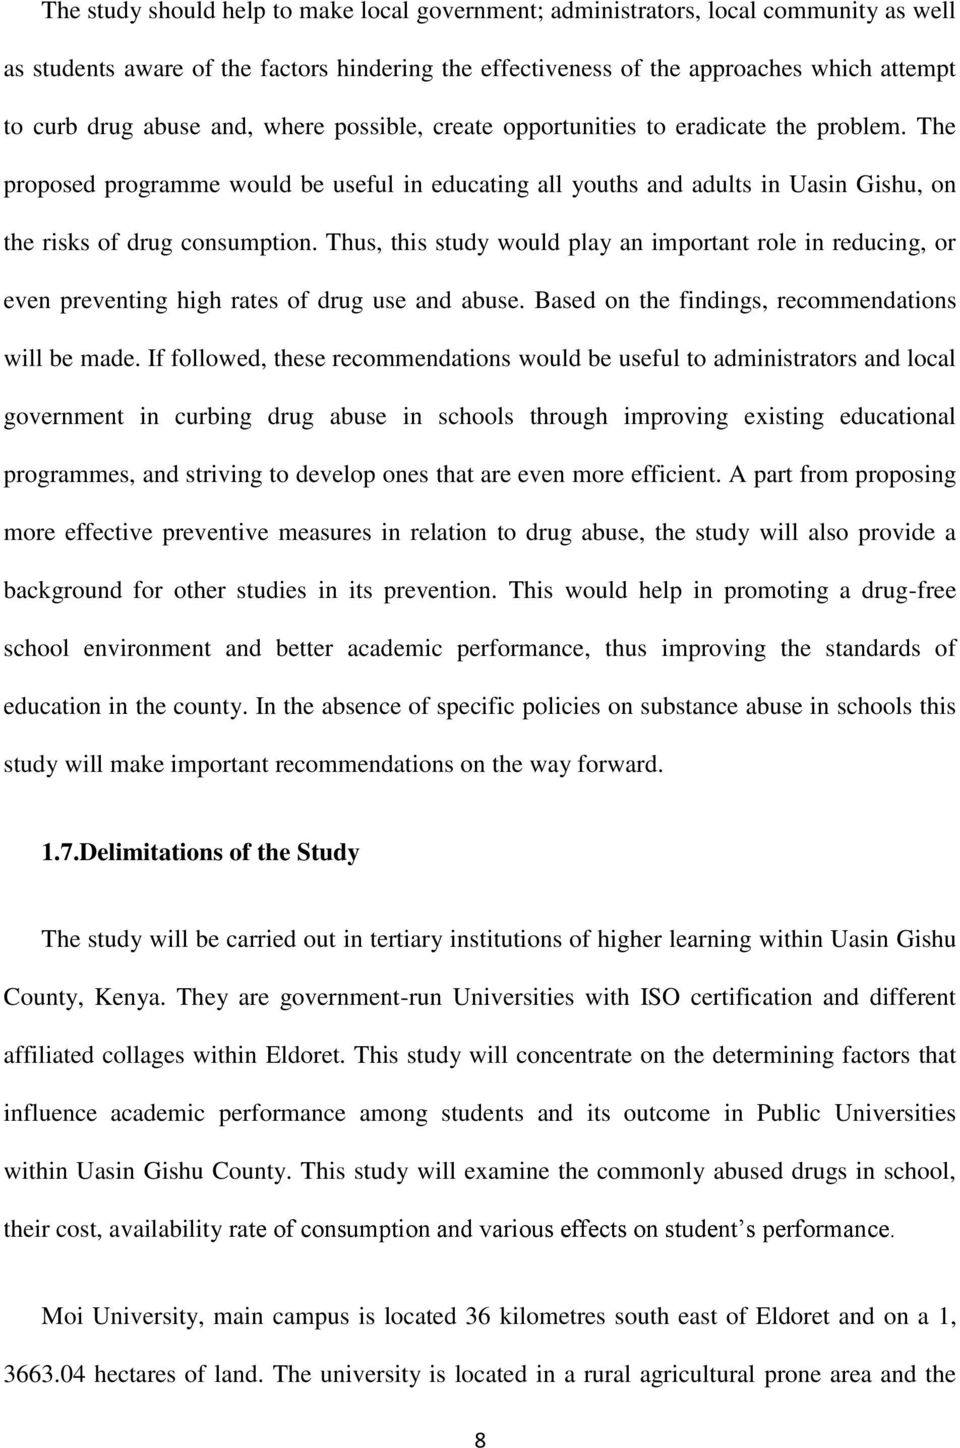 003 Addiction Essay Drugs Essays Drug Topics Abuse College Pa In Students Magnificent About Selfie Hindi Internet Smartphone Conclusion Full